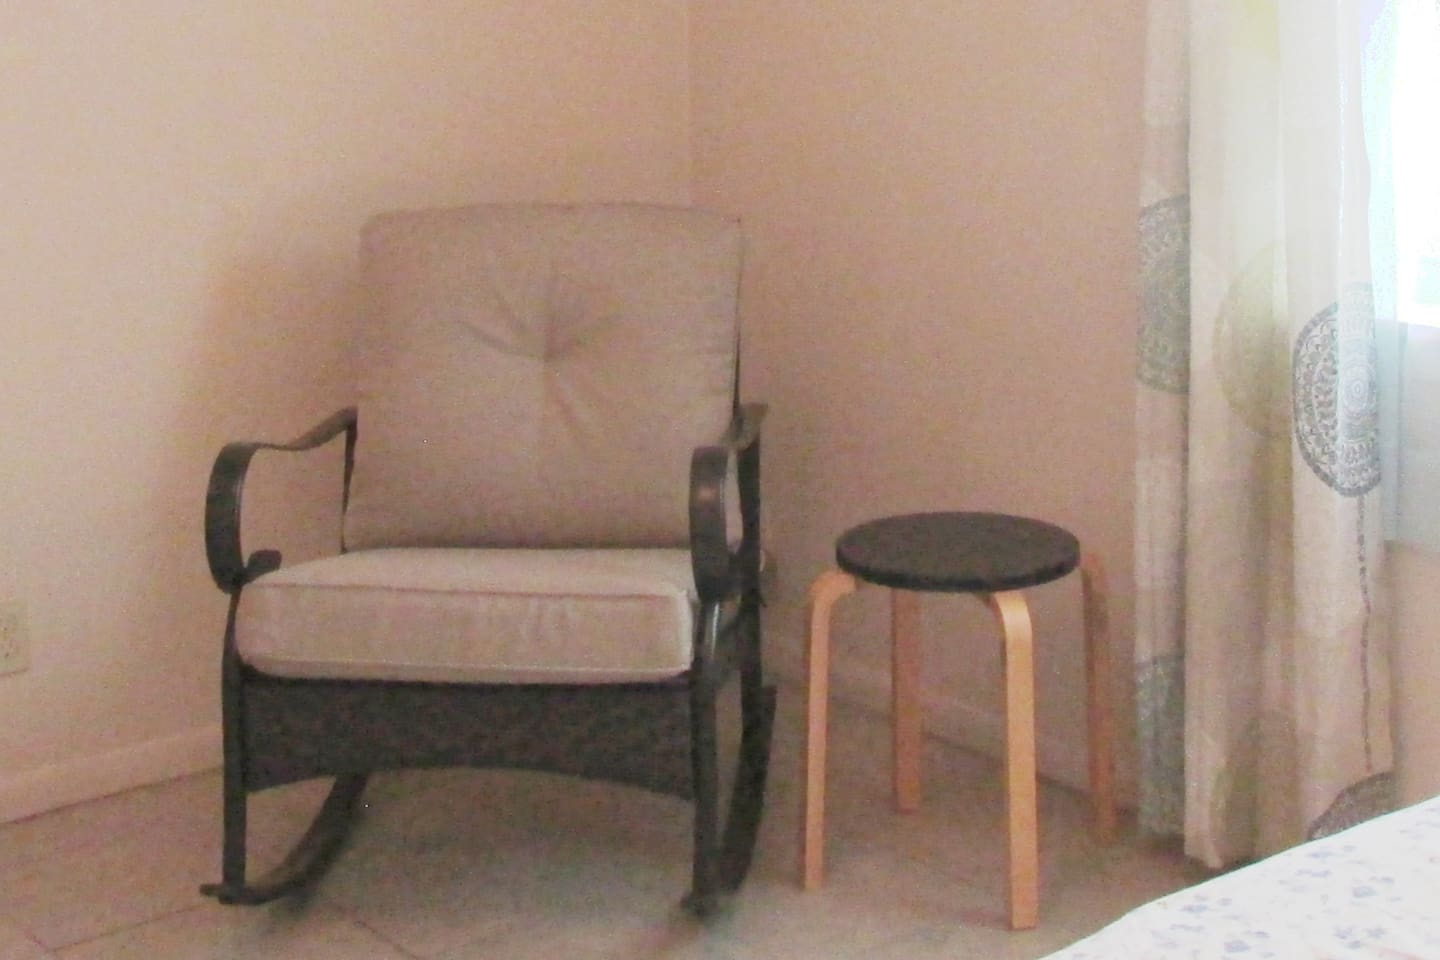 bedroom 1. rocking chair - small table